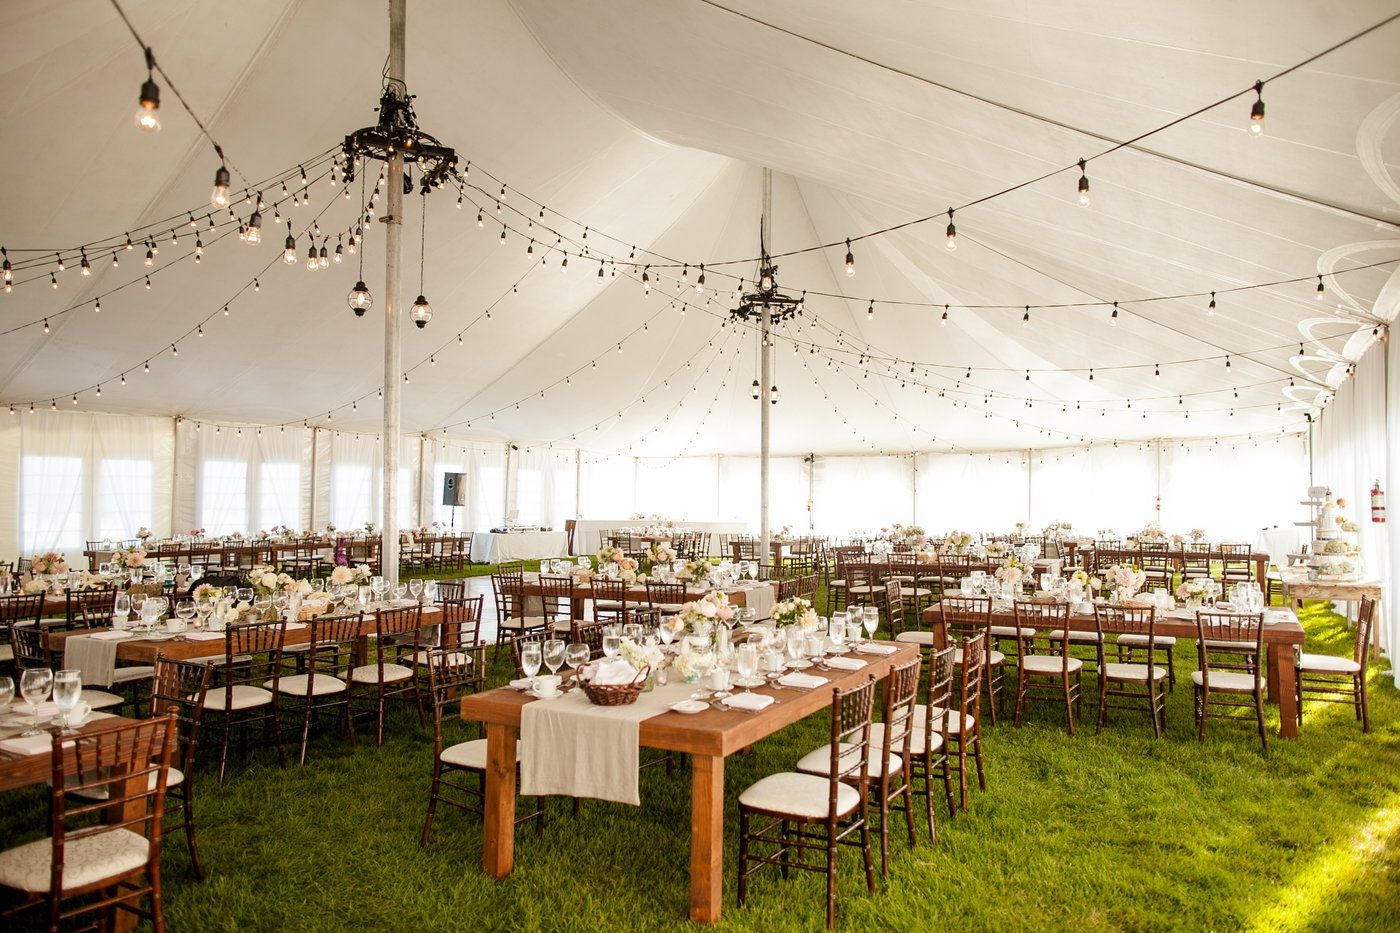 Outside barn wedding ideas  rustic in tent  Wedding  Pinterest  Tents Wedding designs and